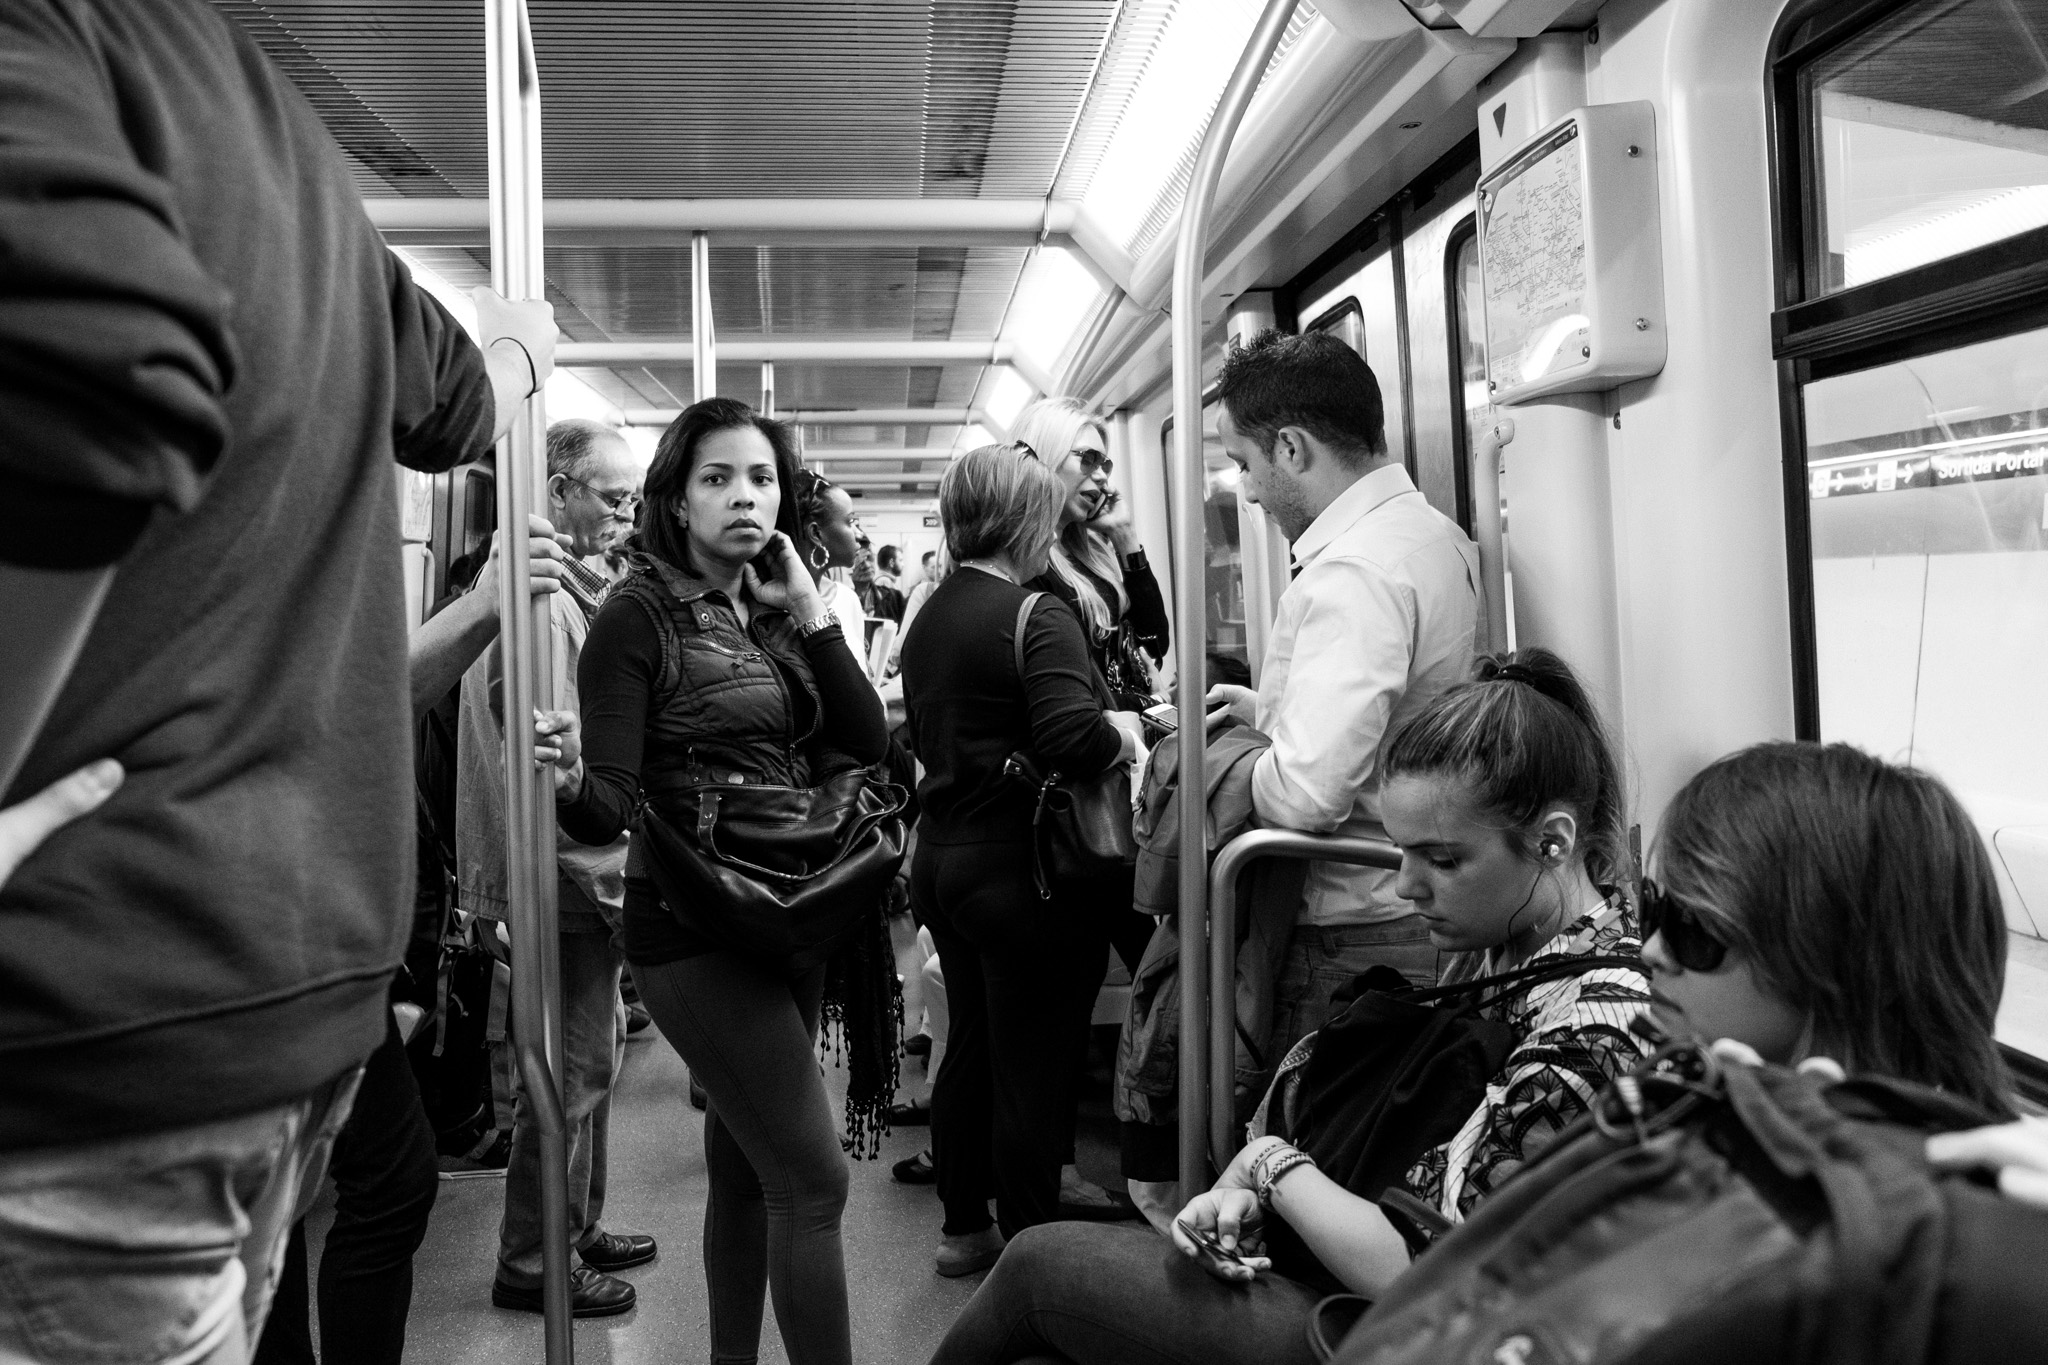 Folks on the subway. I get one of these shots at every city I visit just to see how people react.